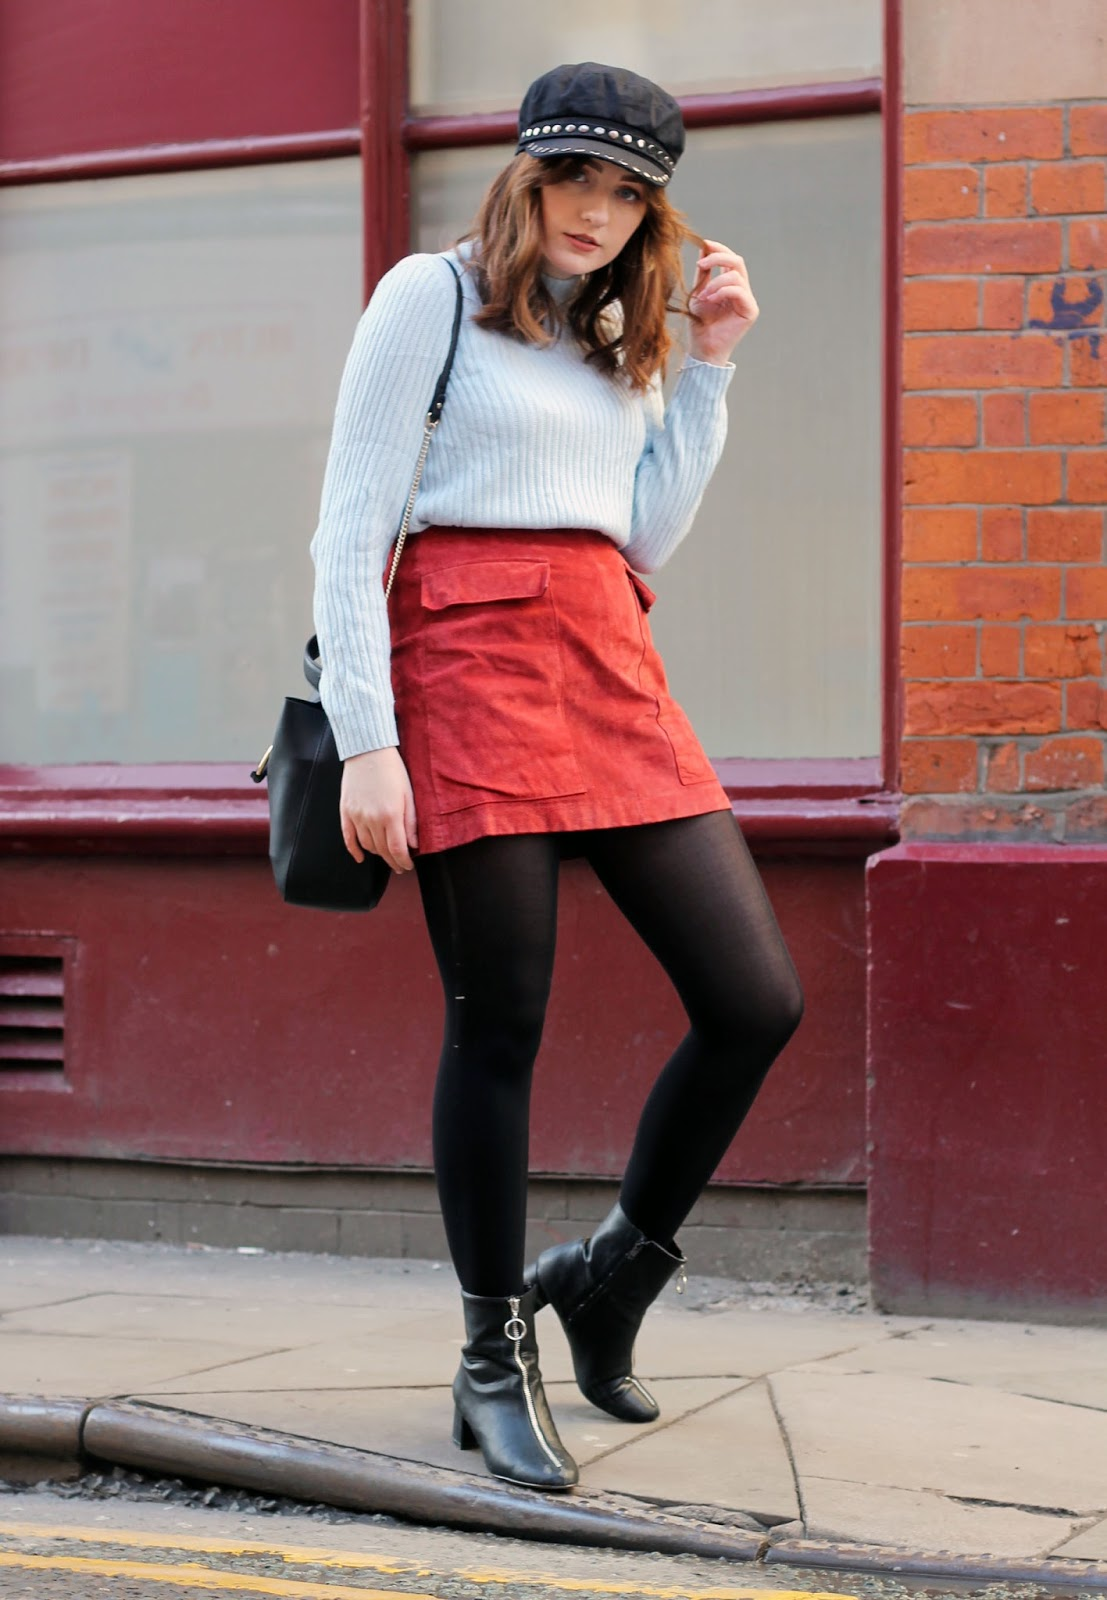 Liverpool style blogger with black studded topshop baker boy hat, baby blue turtle neck ribbed jumper, red suede a line skirt, black ring detail cross body bag and black zip up boots